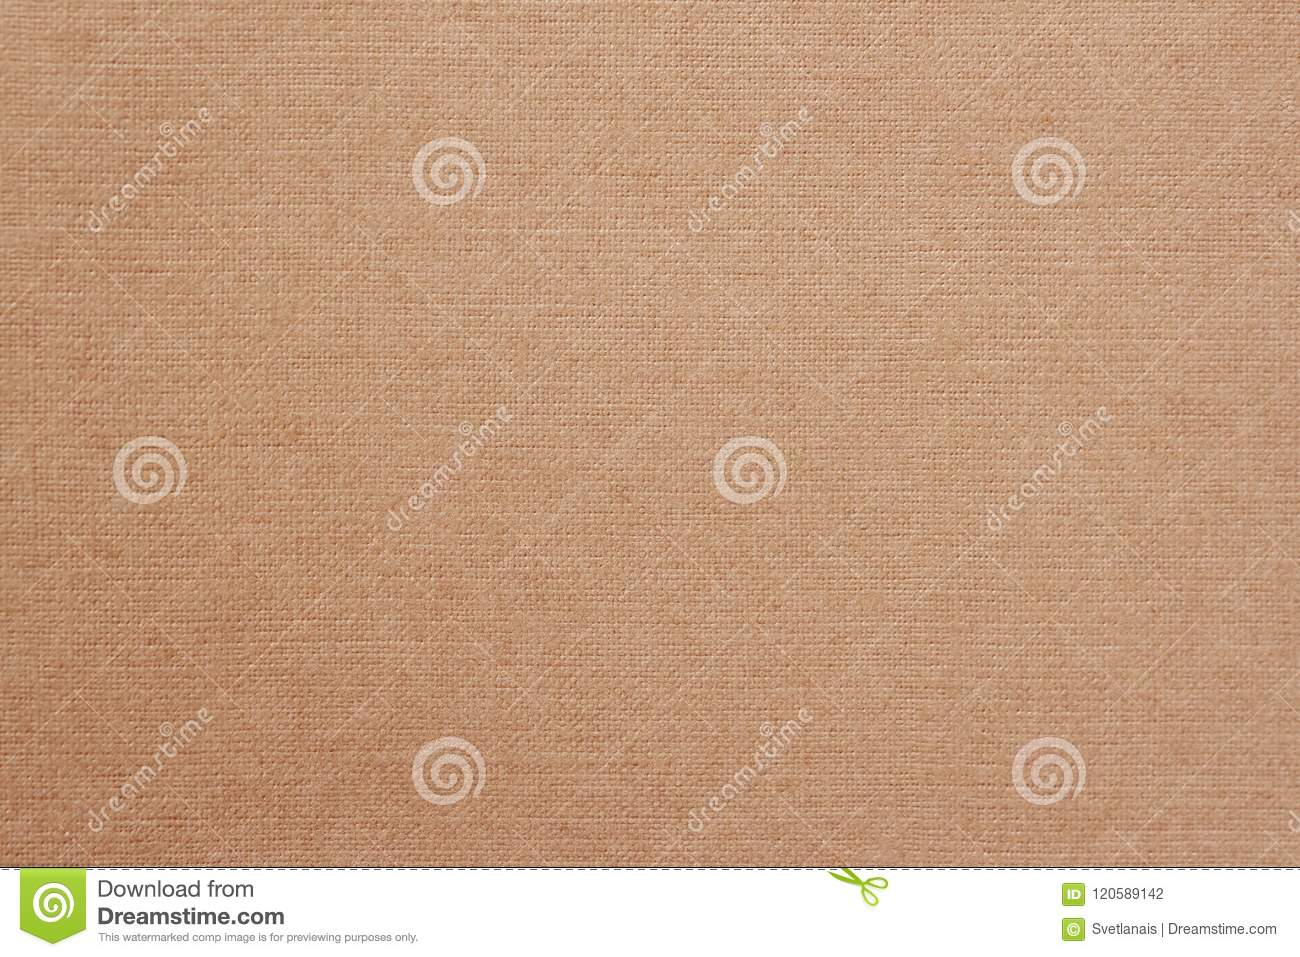 Canvas, fabric background with visible texture, print design elements. Closeup of warm, soft coffee color jute, texture